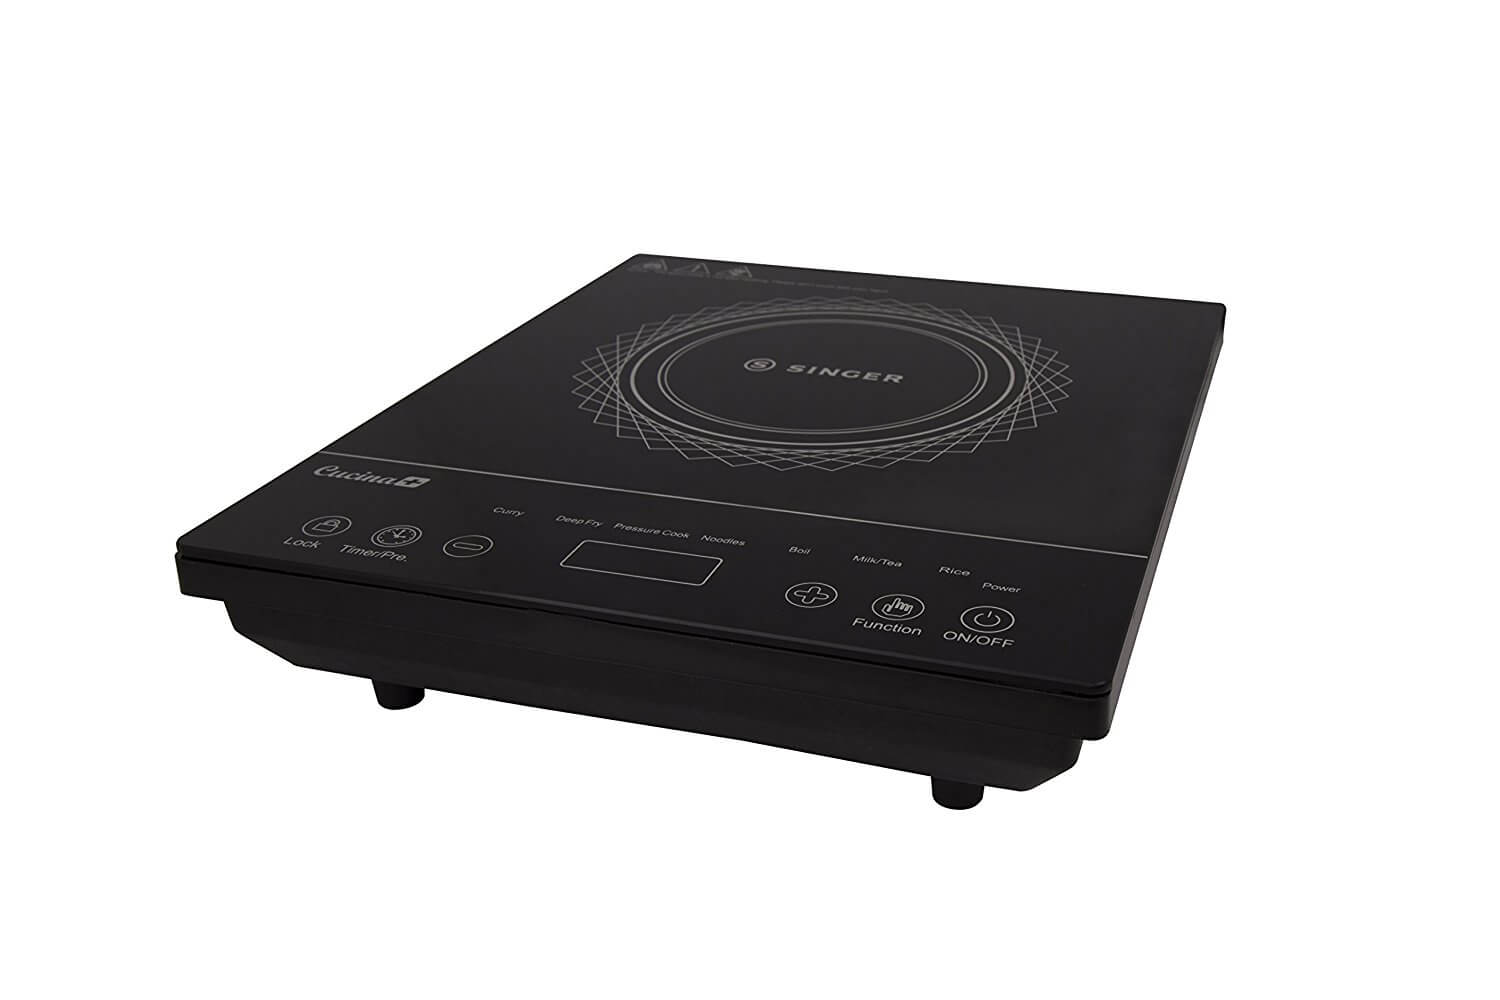 Singer 1600 W Cucina Plus Feather Touch Induction Cooker